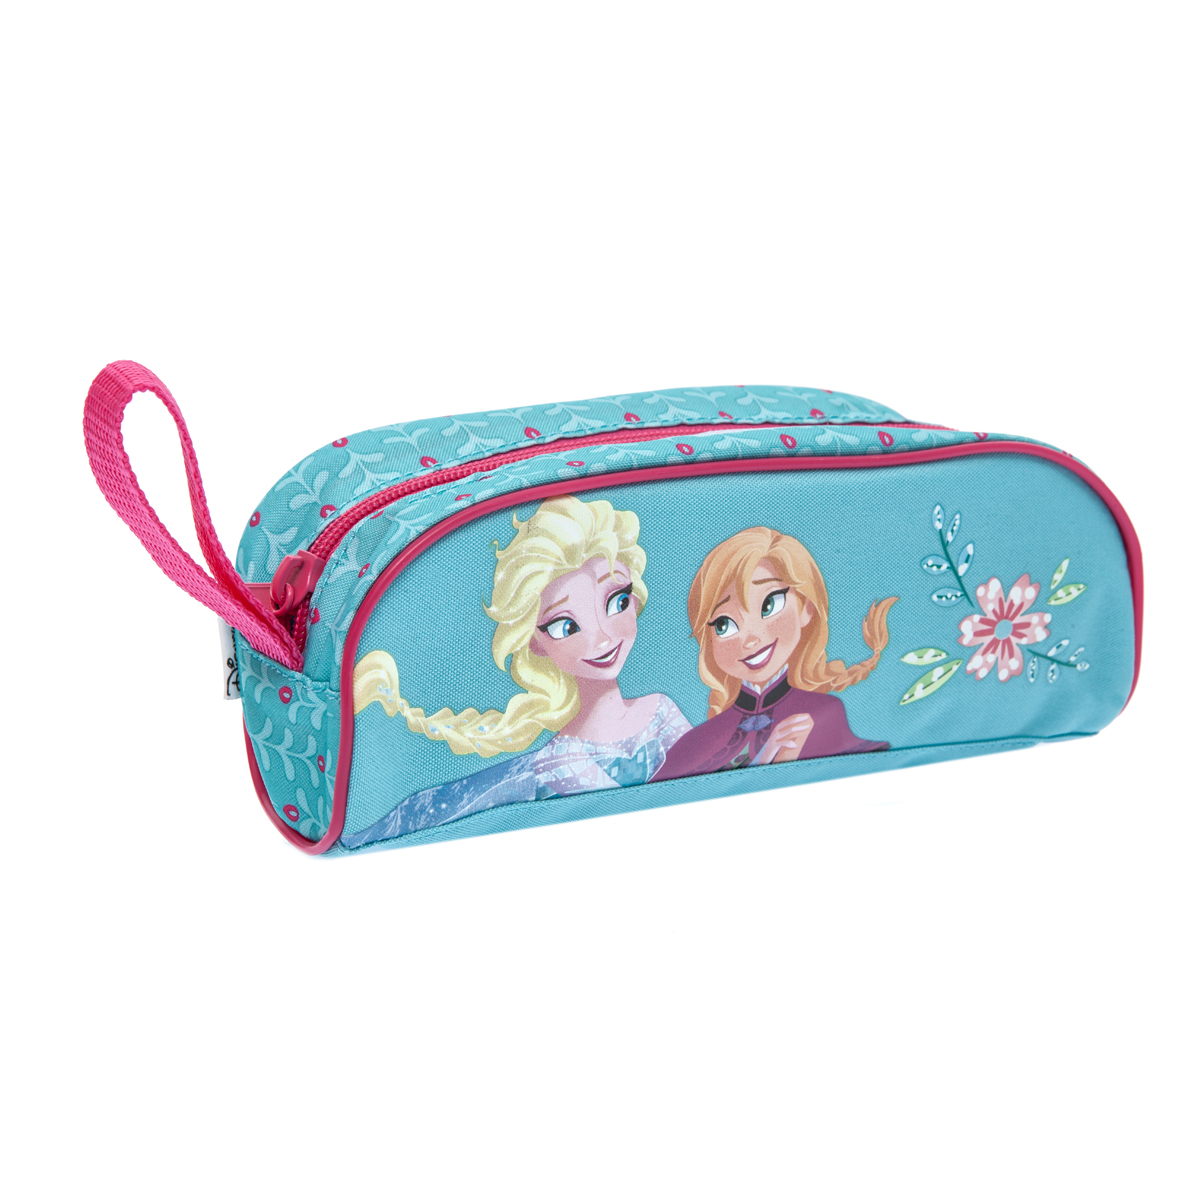 AMERICAN TOURISTER - Παιδική κασετίνα Disney by AMERICAN TOURISTER μπλε